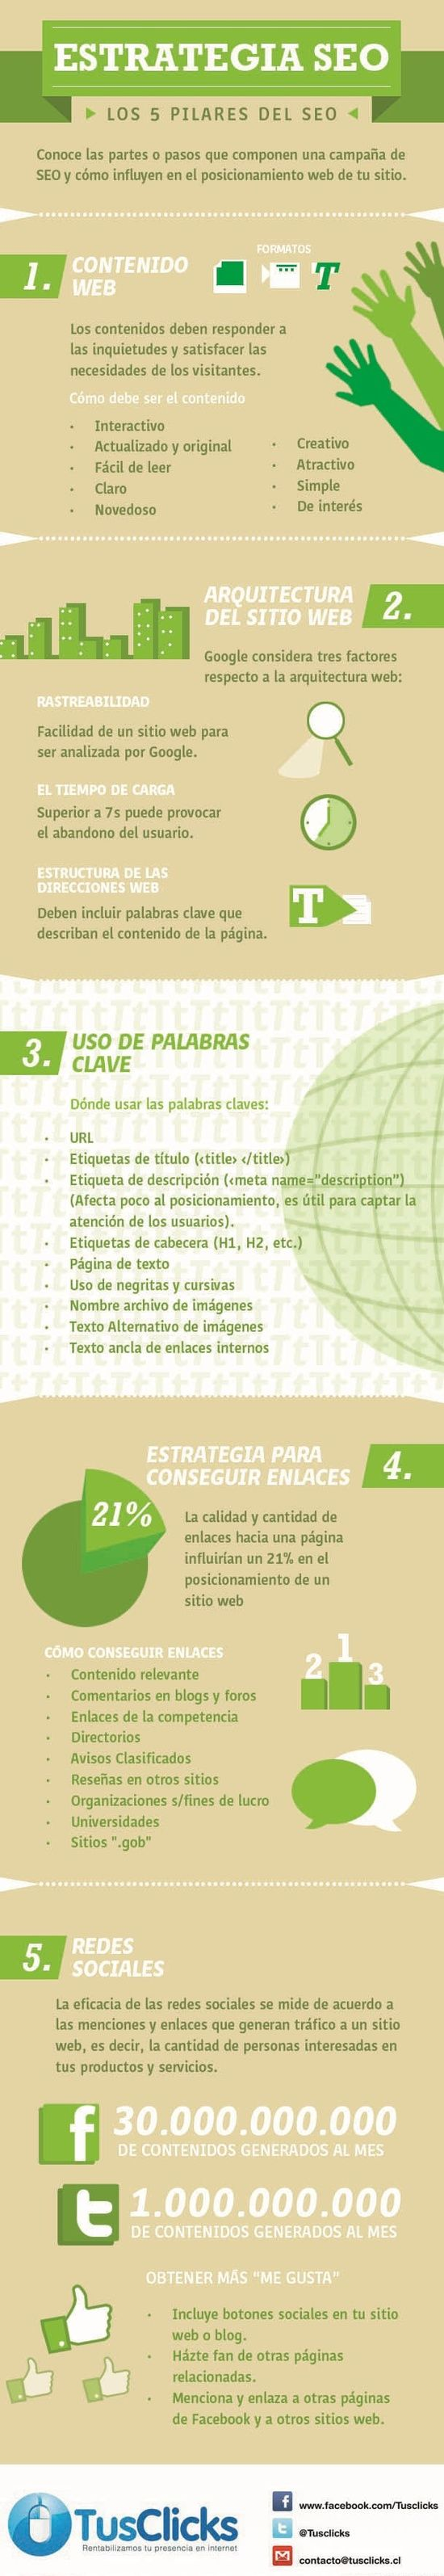 Los 5 pilares del SEO #infografia #infographic #seo  We love SEO and infographics. Come visit us in Vienna, Austria or at httpwww.ostheimer.at